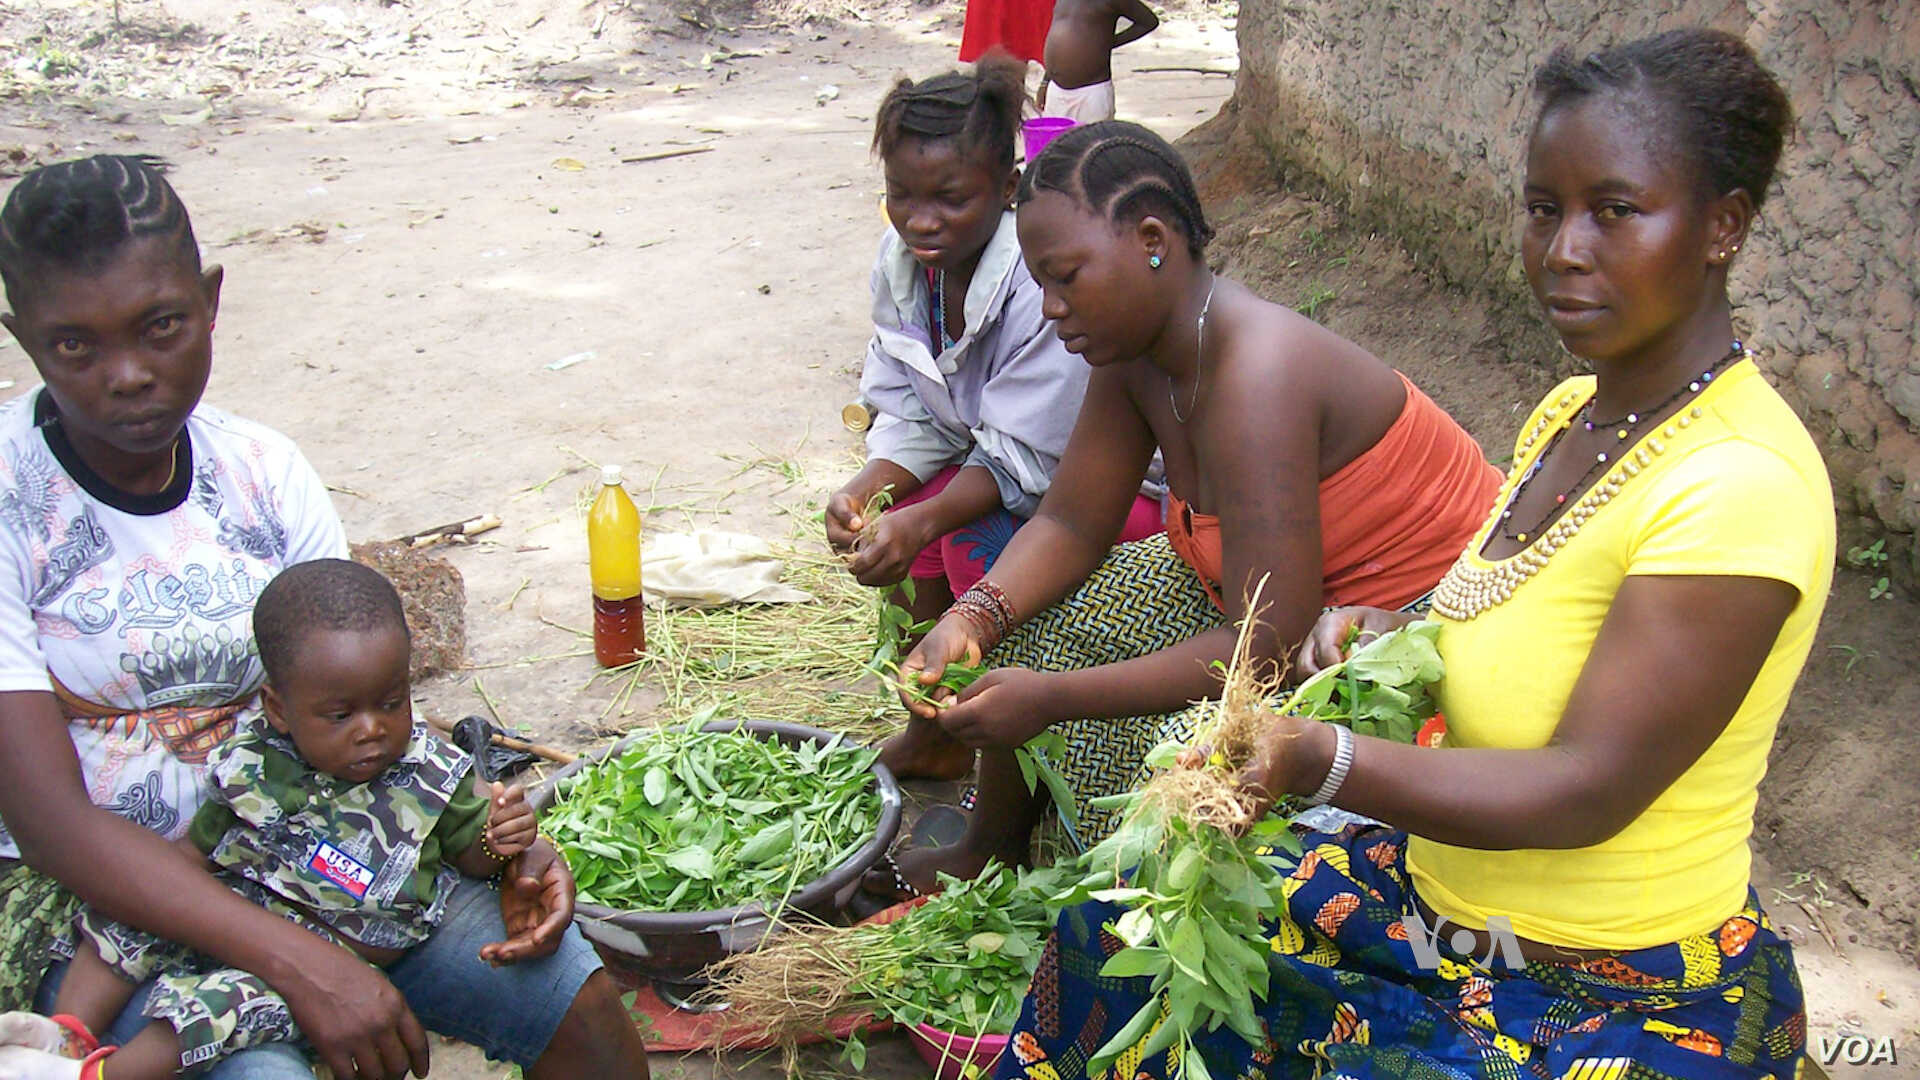 """Action Africa strives to empower women because they """"pull the community up,"""" says organization founder Chris Egbulem. (Photo: Courtesy Action Africa)"""